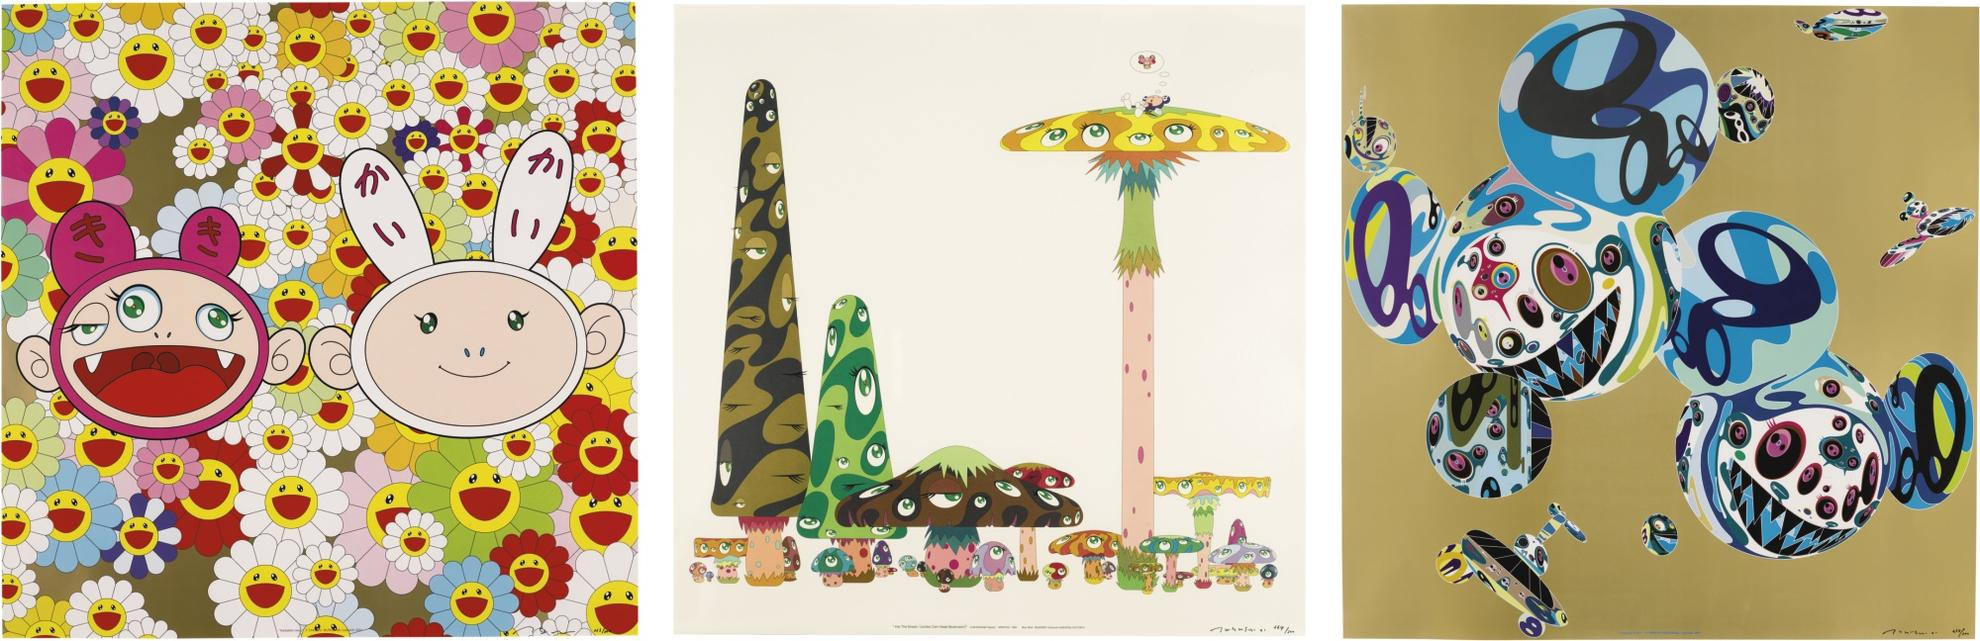 Takashi Murakami-(i) Into The Dream. [Jumbo Corn Head Mushroom]; (ii) Reversal D.N.A Iii. Kaikaikiki News-2001